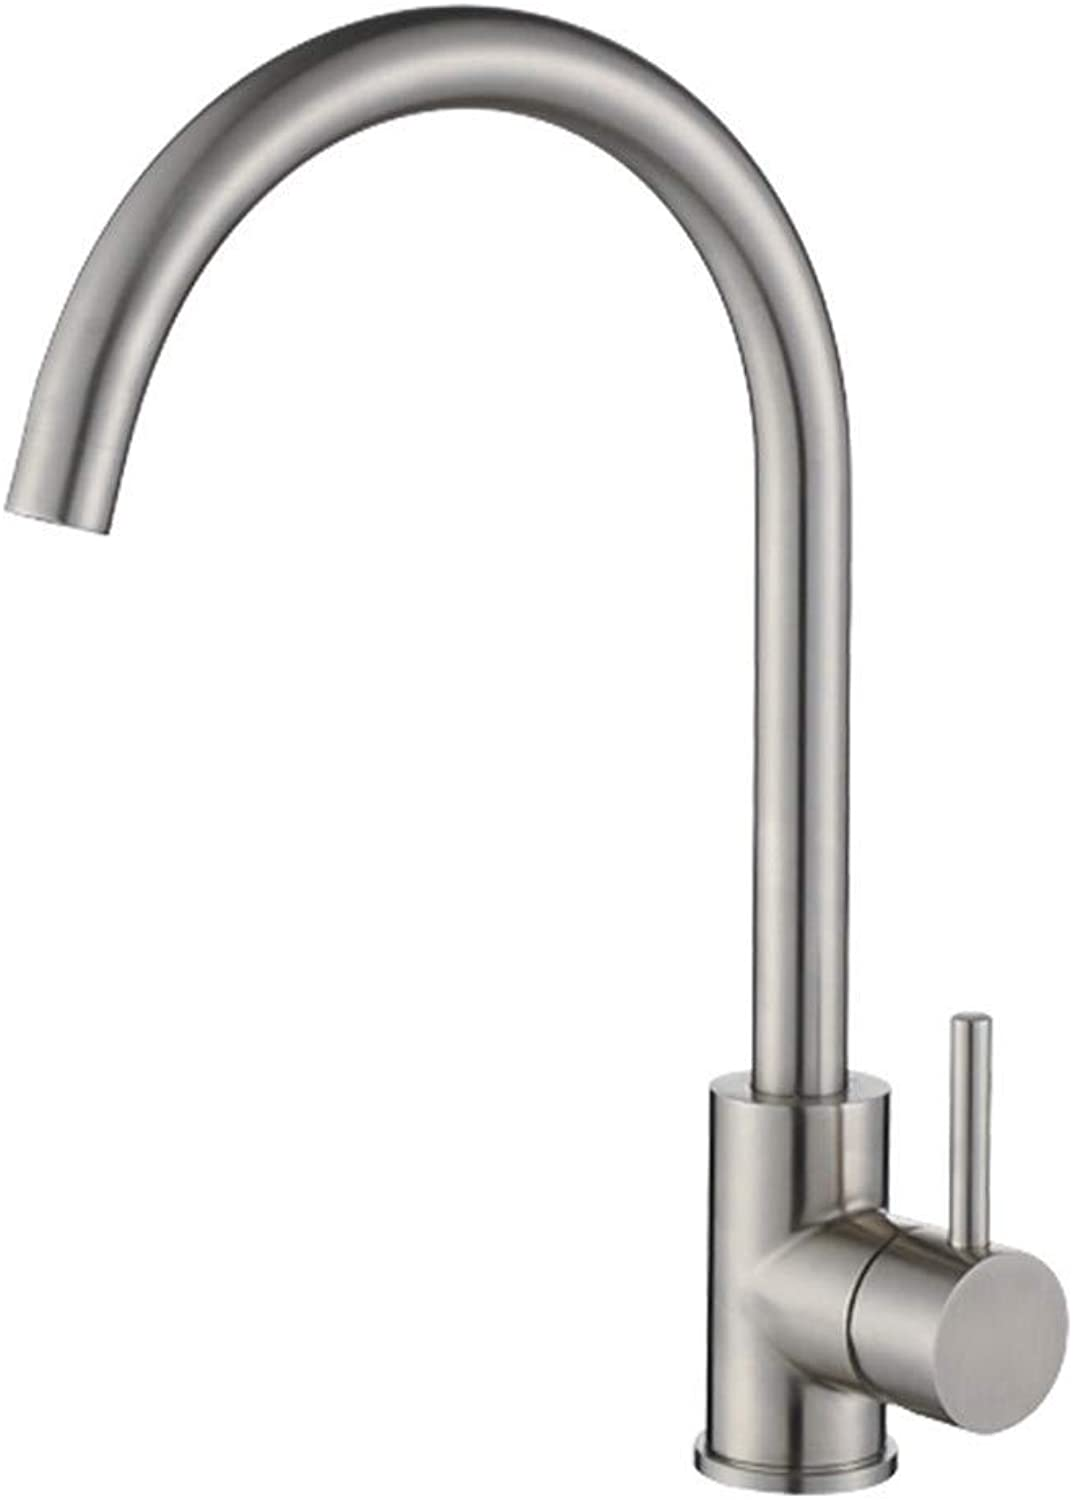 304 Stainless Steel Hot Water Mixer, Kitchen Faucet Kitchen Sink Flaps Stainless Steel Single Handle redatable